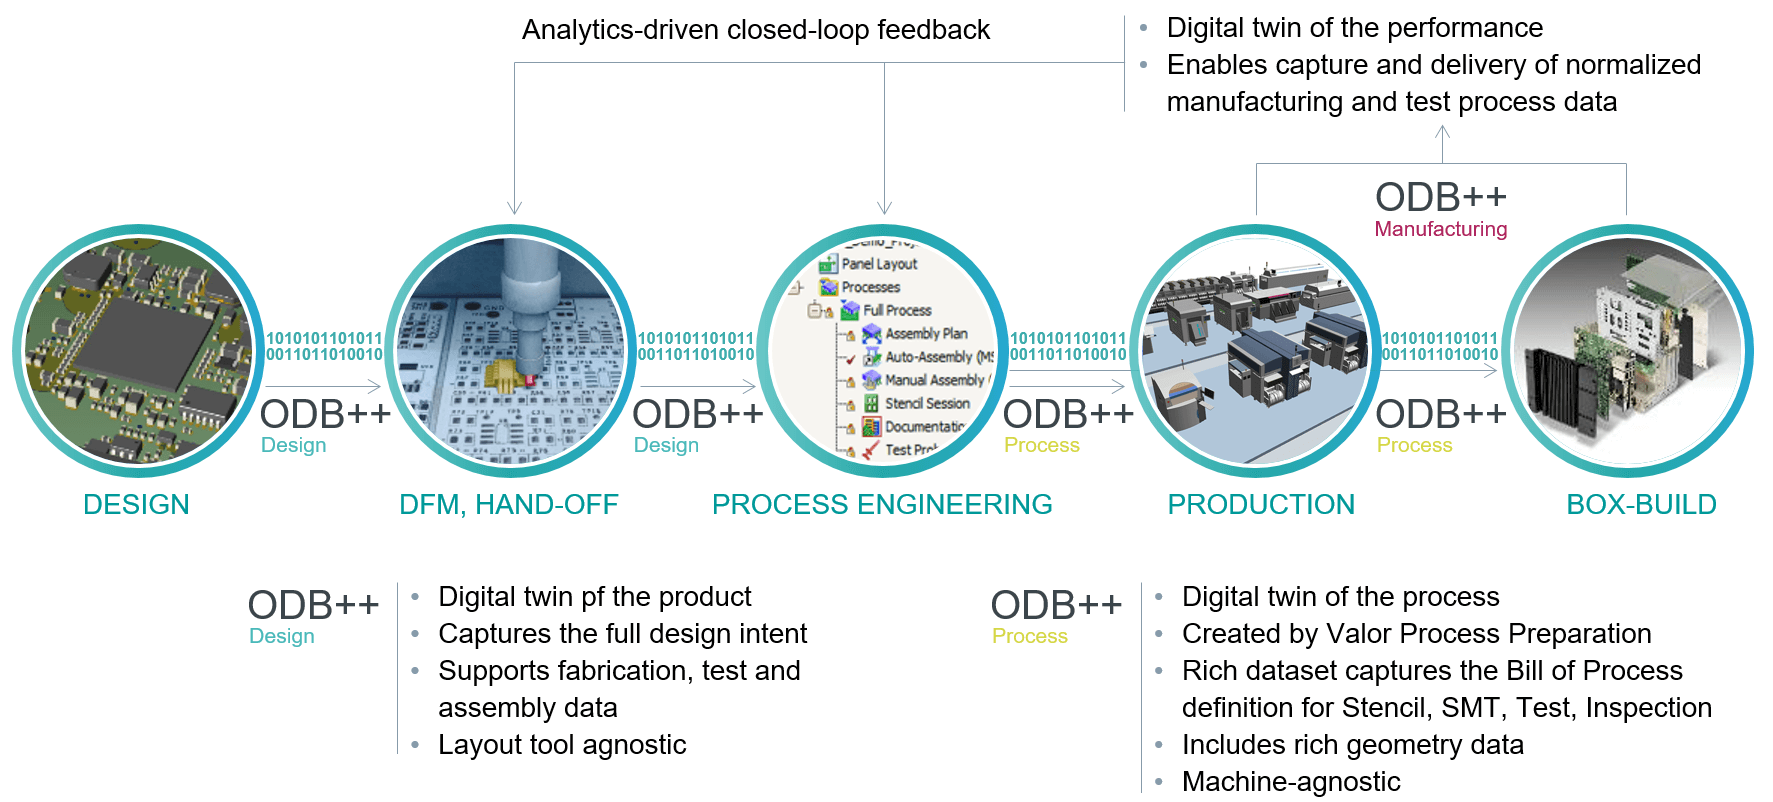 A continuous digital flow based on ODB ++, the open and intelligent data exchange format